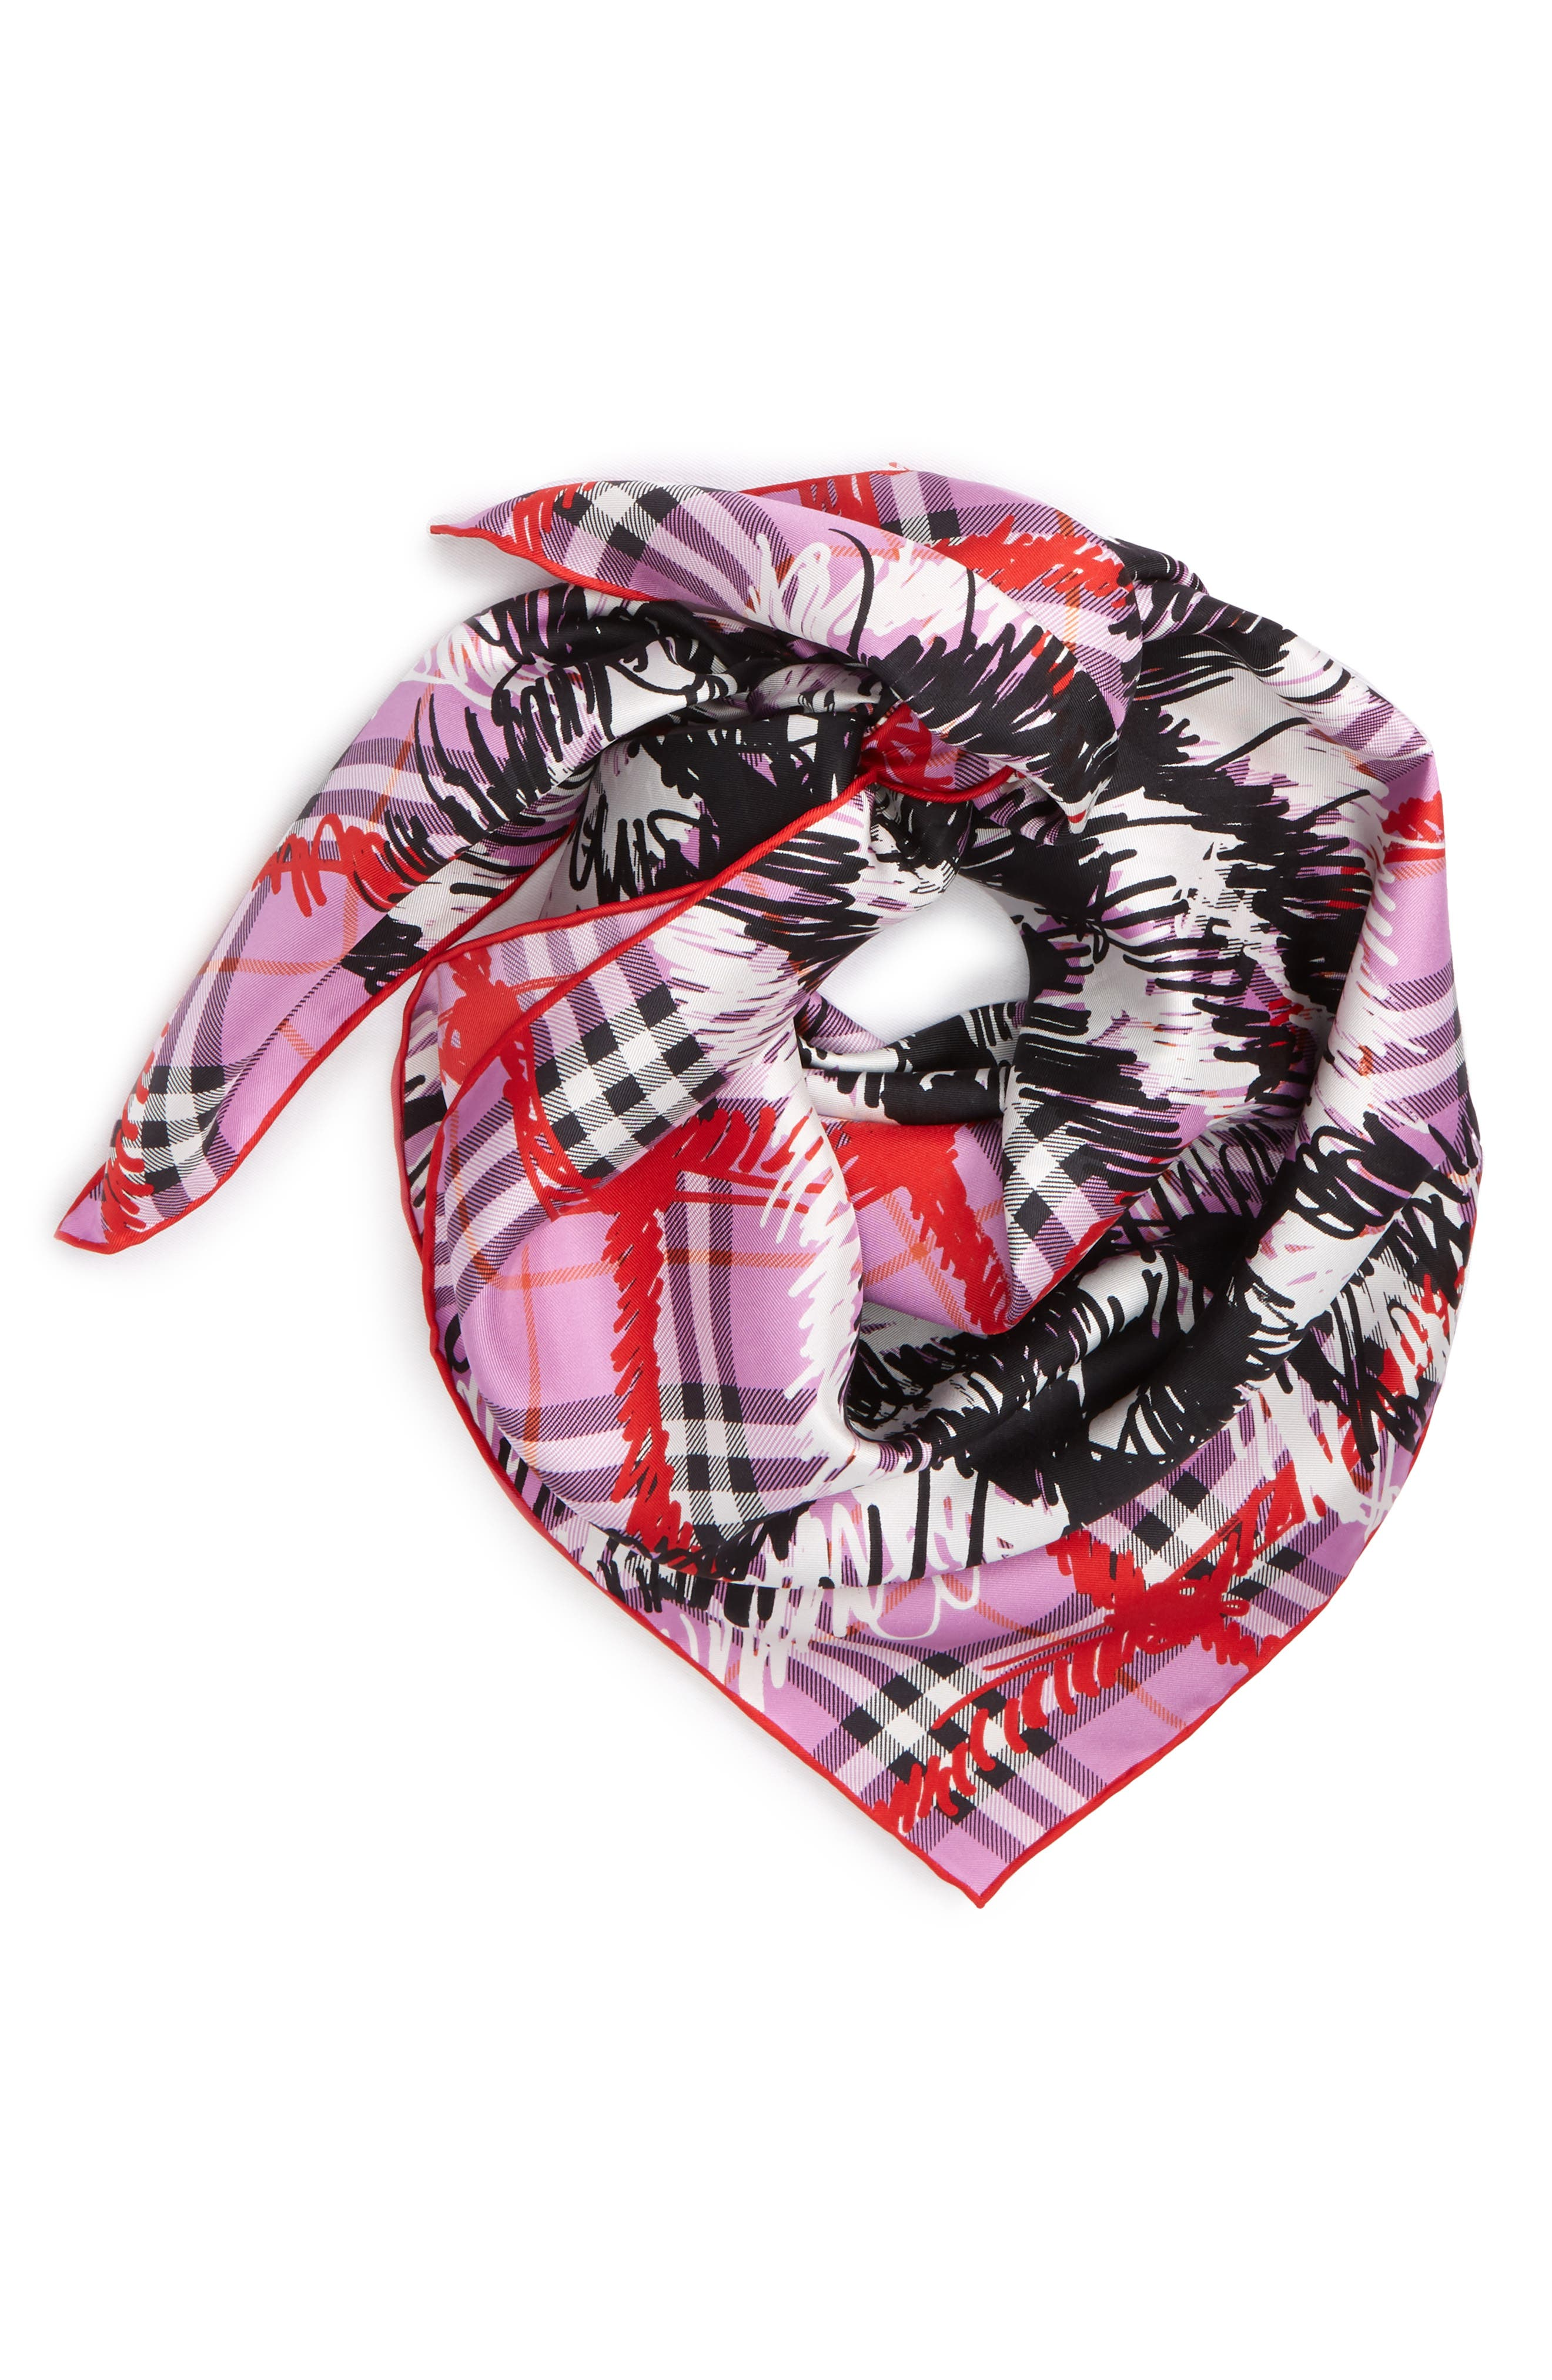 Scribble Vintage Check Silk Square Scarf,                             Main thumbnail 1, color,                             Fuchsia Pink